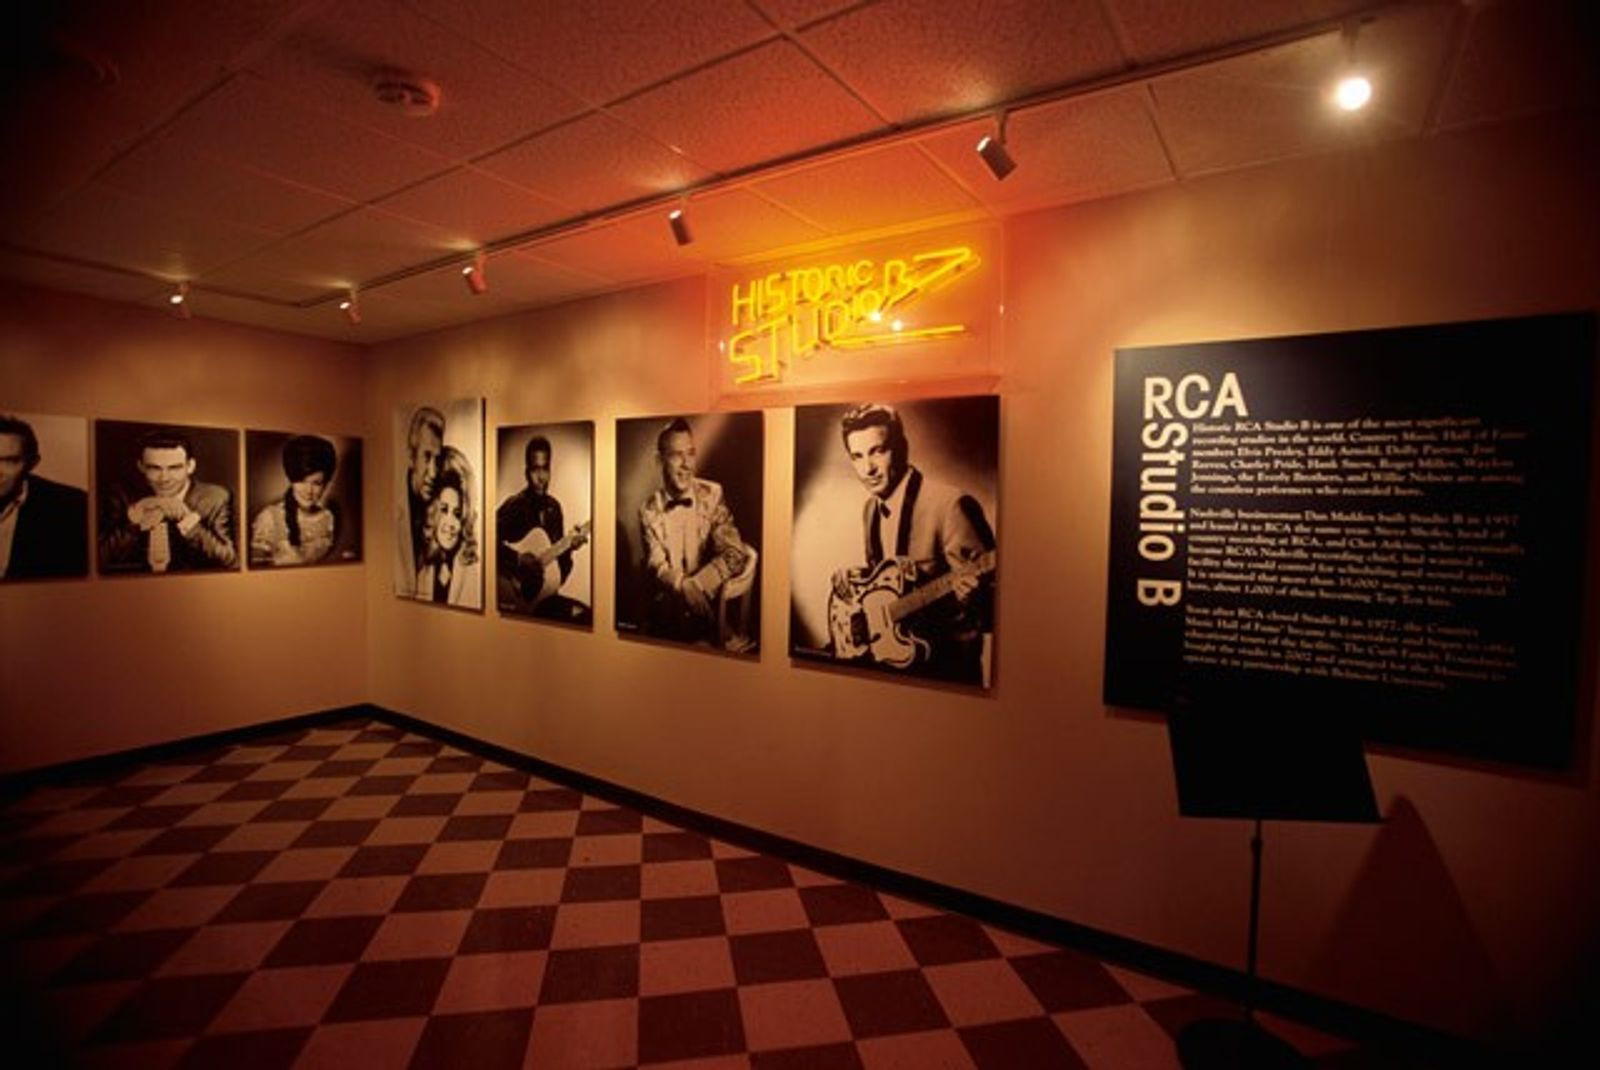 Nashville: A whirlwind of a music city